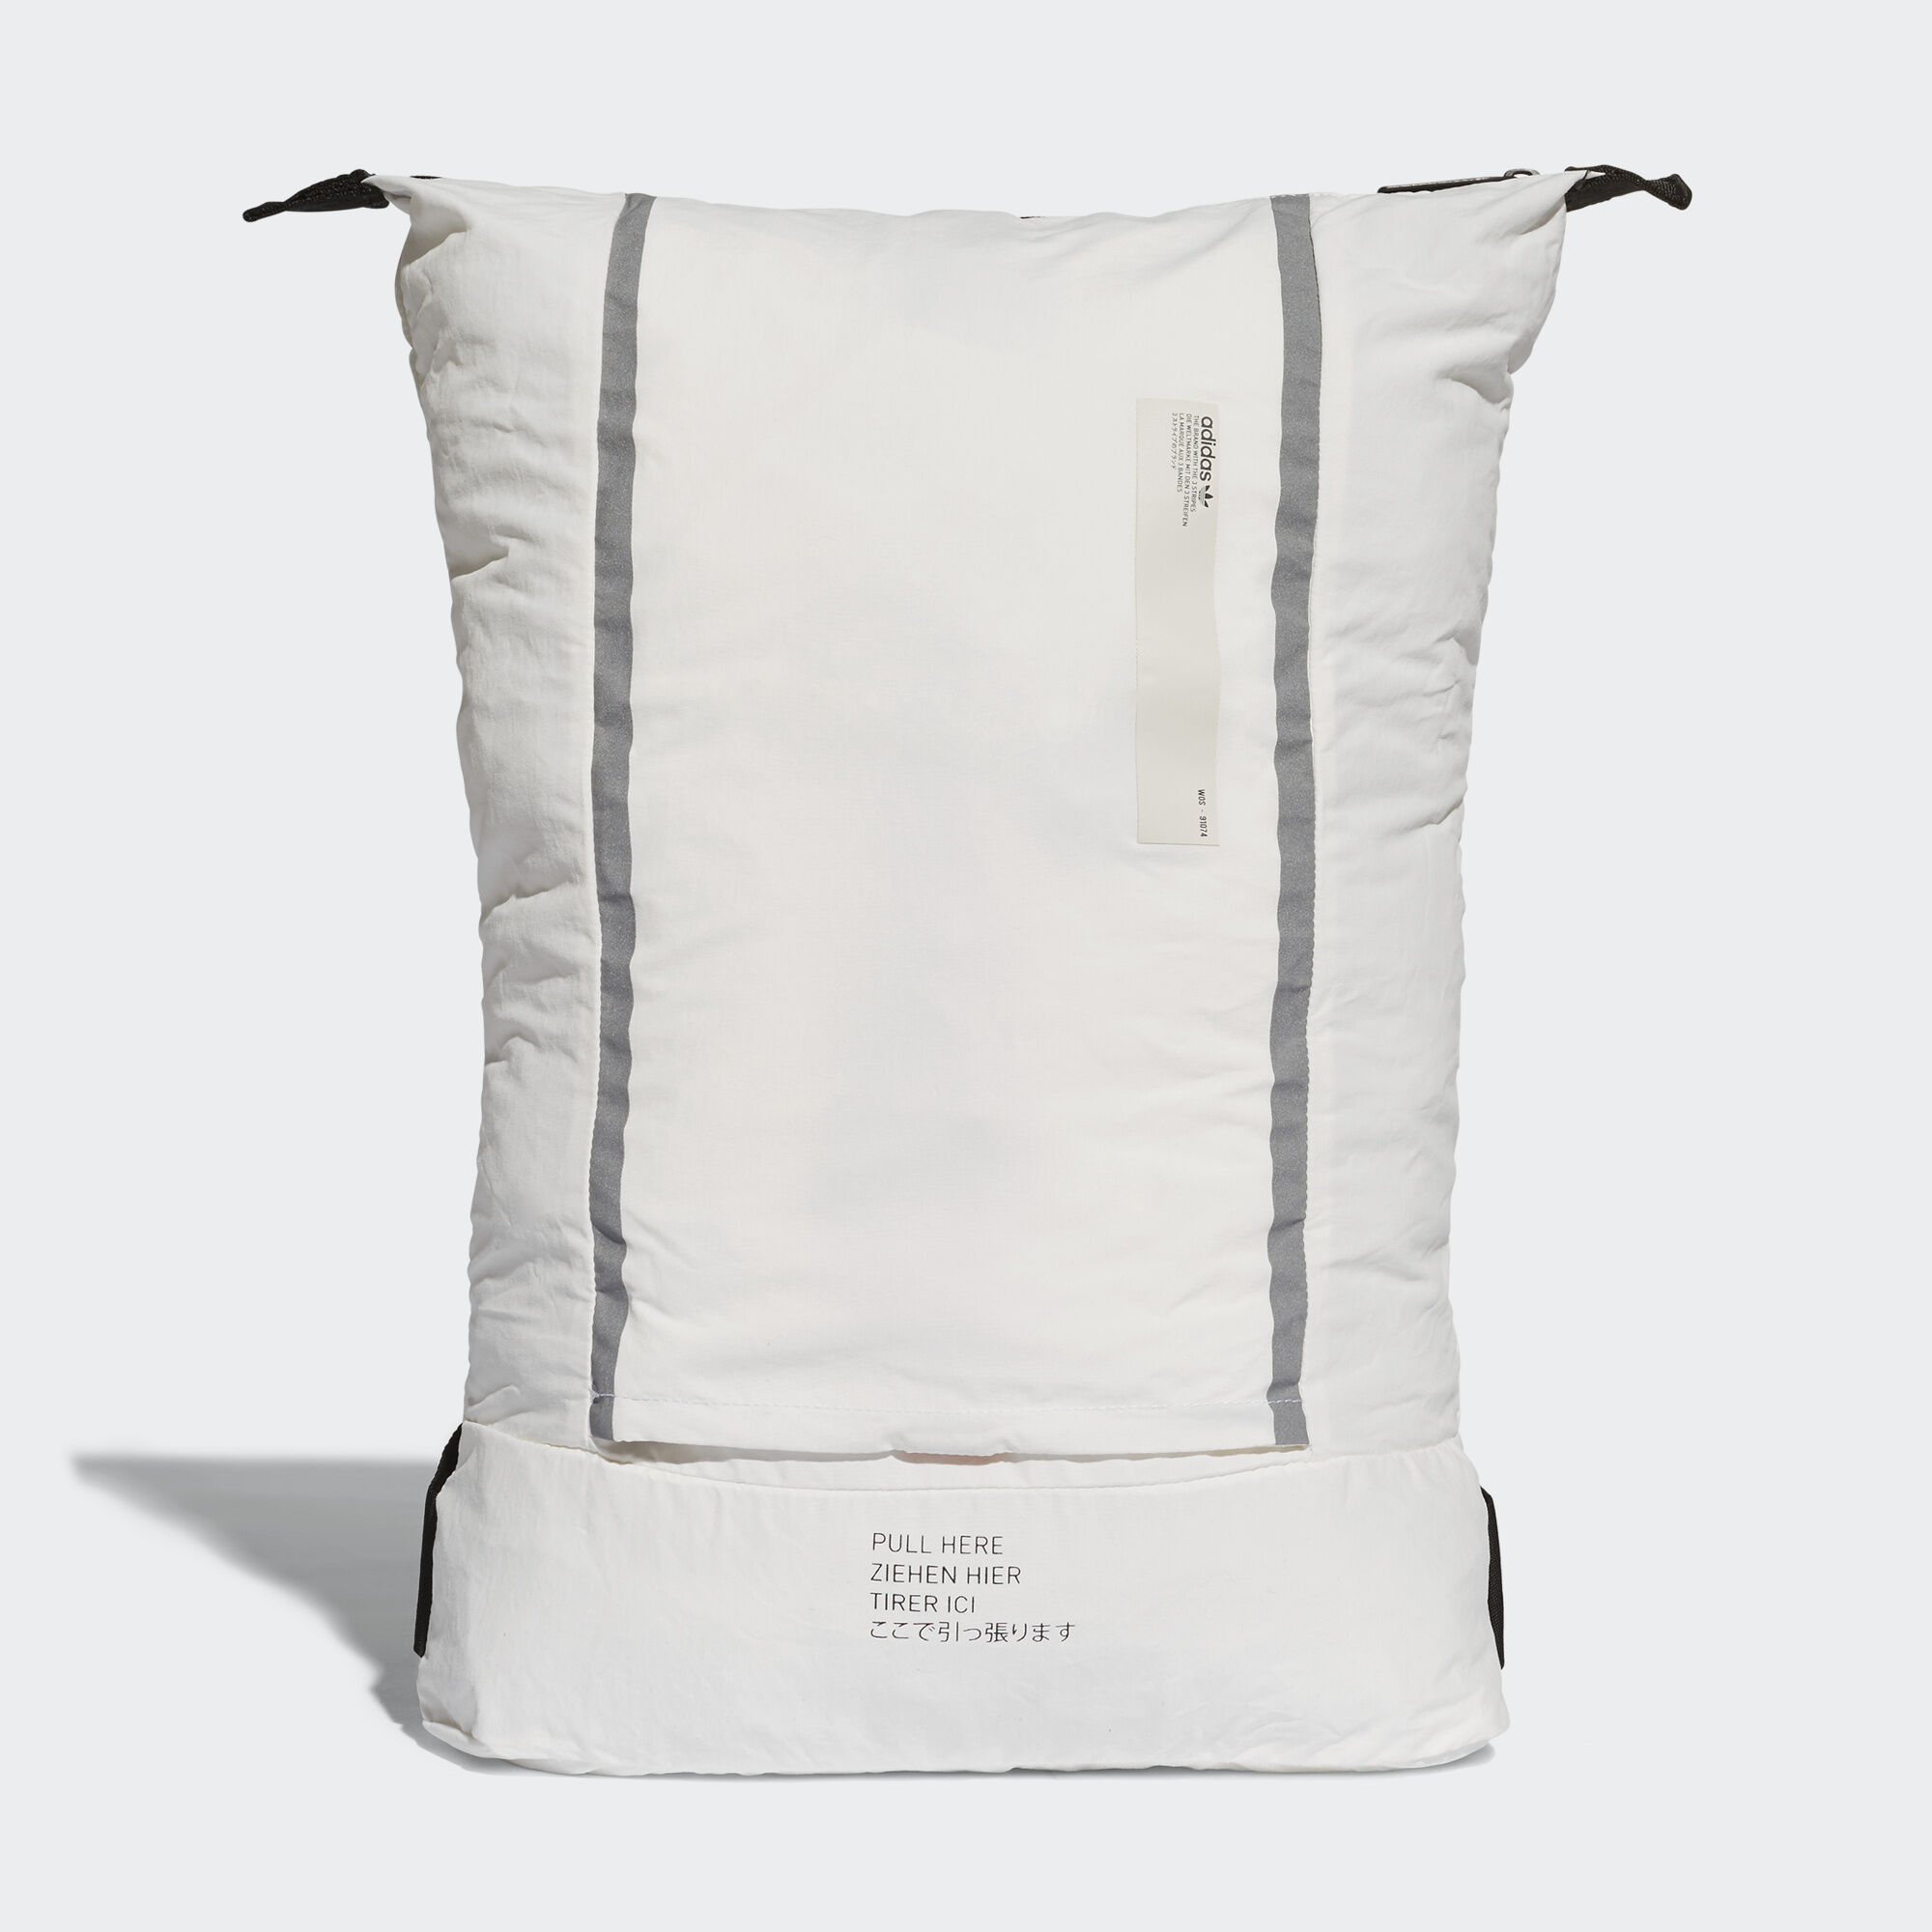 adidas - adidas NMD Packable Backpack Core White DH2873 213c0ab7e7304